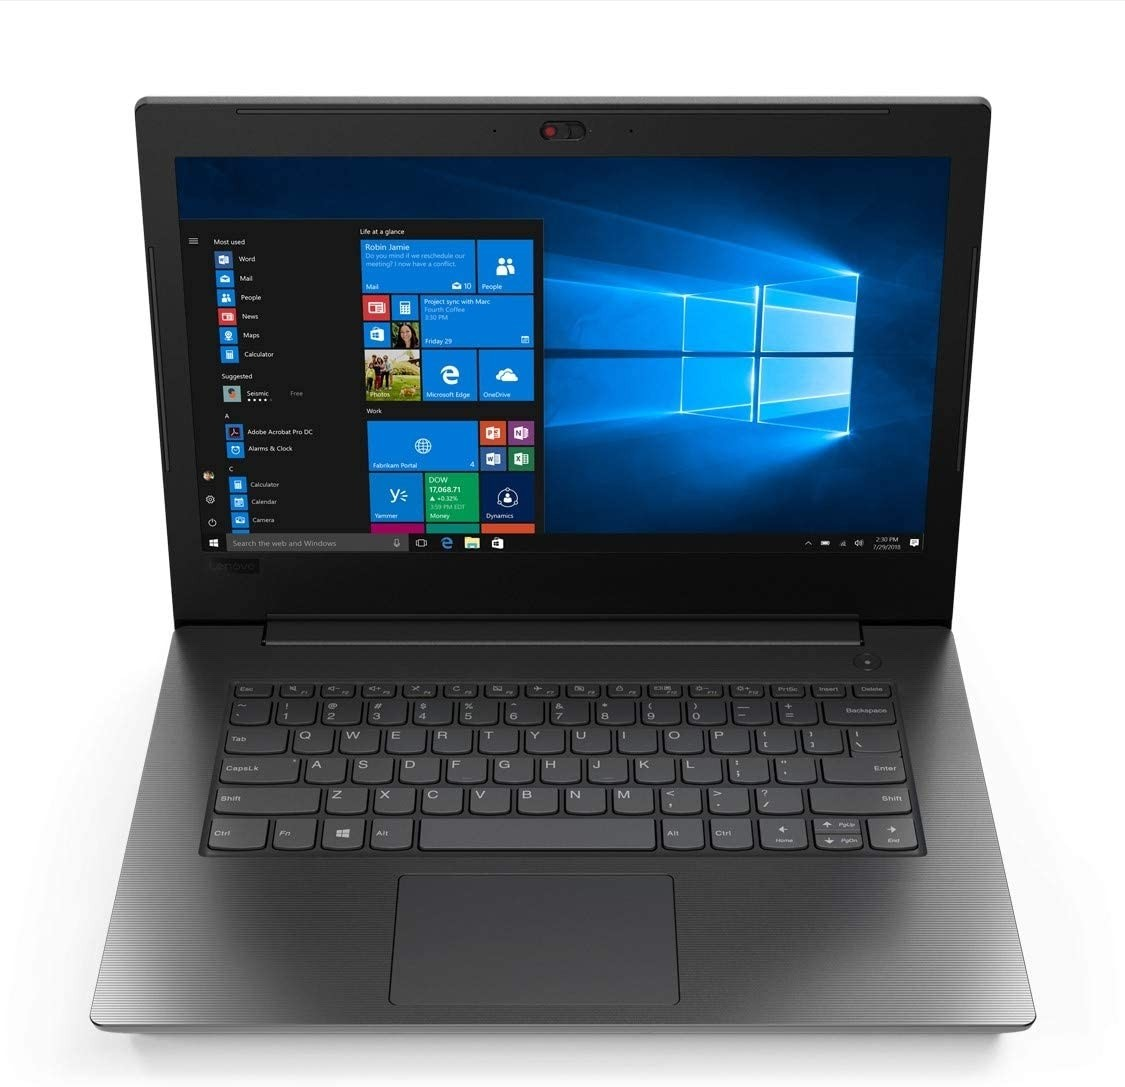 "Refurbished laptops & desktops - LENOVO V130 CORE I3 7020U, 4GB, 1 TB, 14"" HD, DOS, 2 USB PORTS, WIFI, HDMI, 2 CELL 30WH, TPM 2.0, THINK SHUTTER CAMERA"